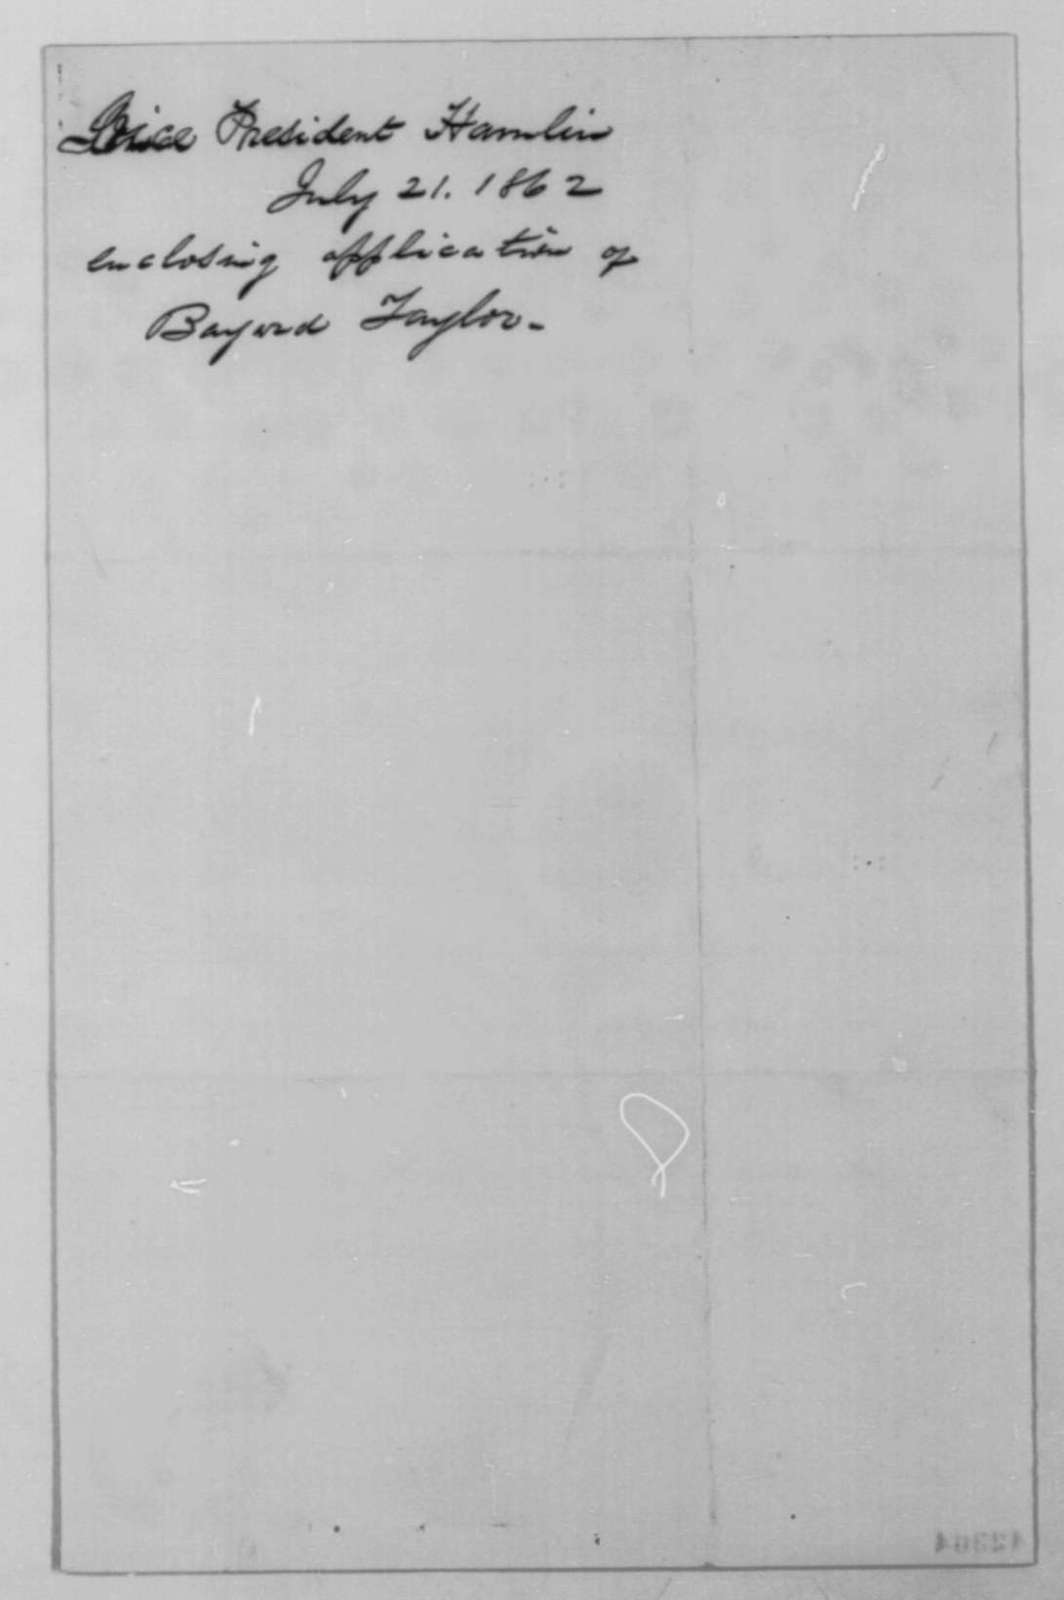 Hannibal Hamlin to Abraham Lincoln, Monday, July 21, 1862  (Recommendation)